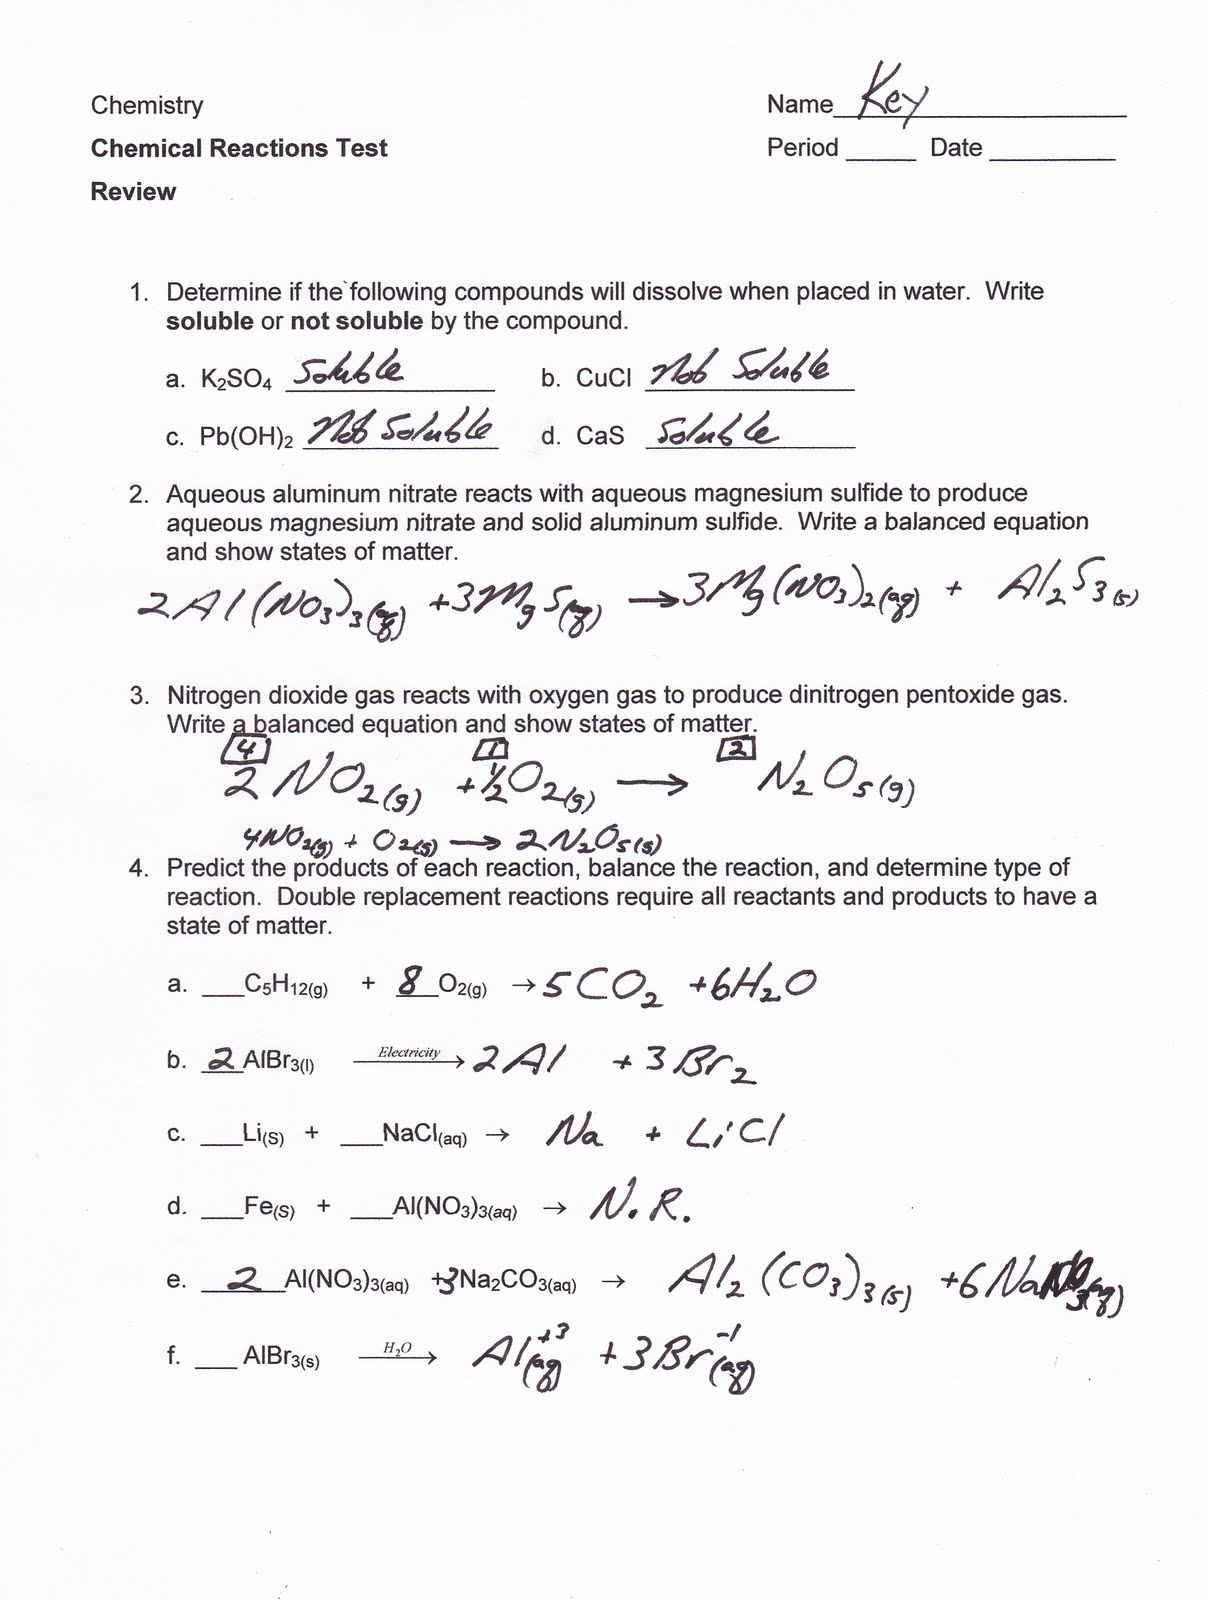 Printables Chemistry Review Worksheet mr brueckners chemistry class hhs 2011 12 for those of you experiencing a little difficulty on the balancing chemical reactions worksheet i have some advice possible sticking point